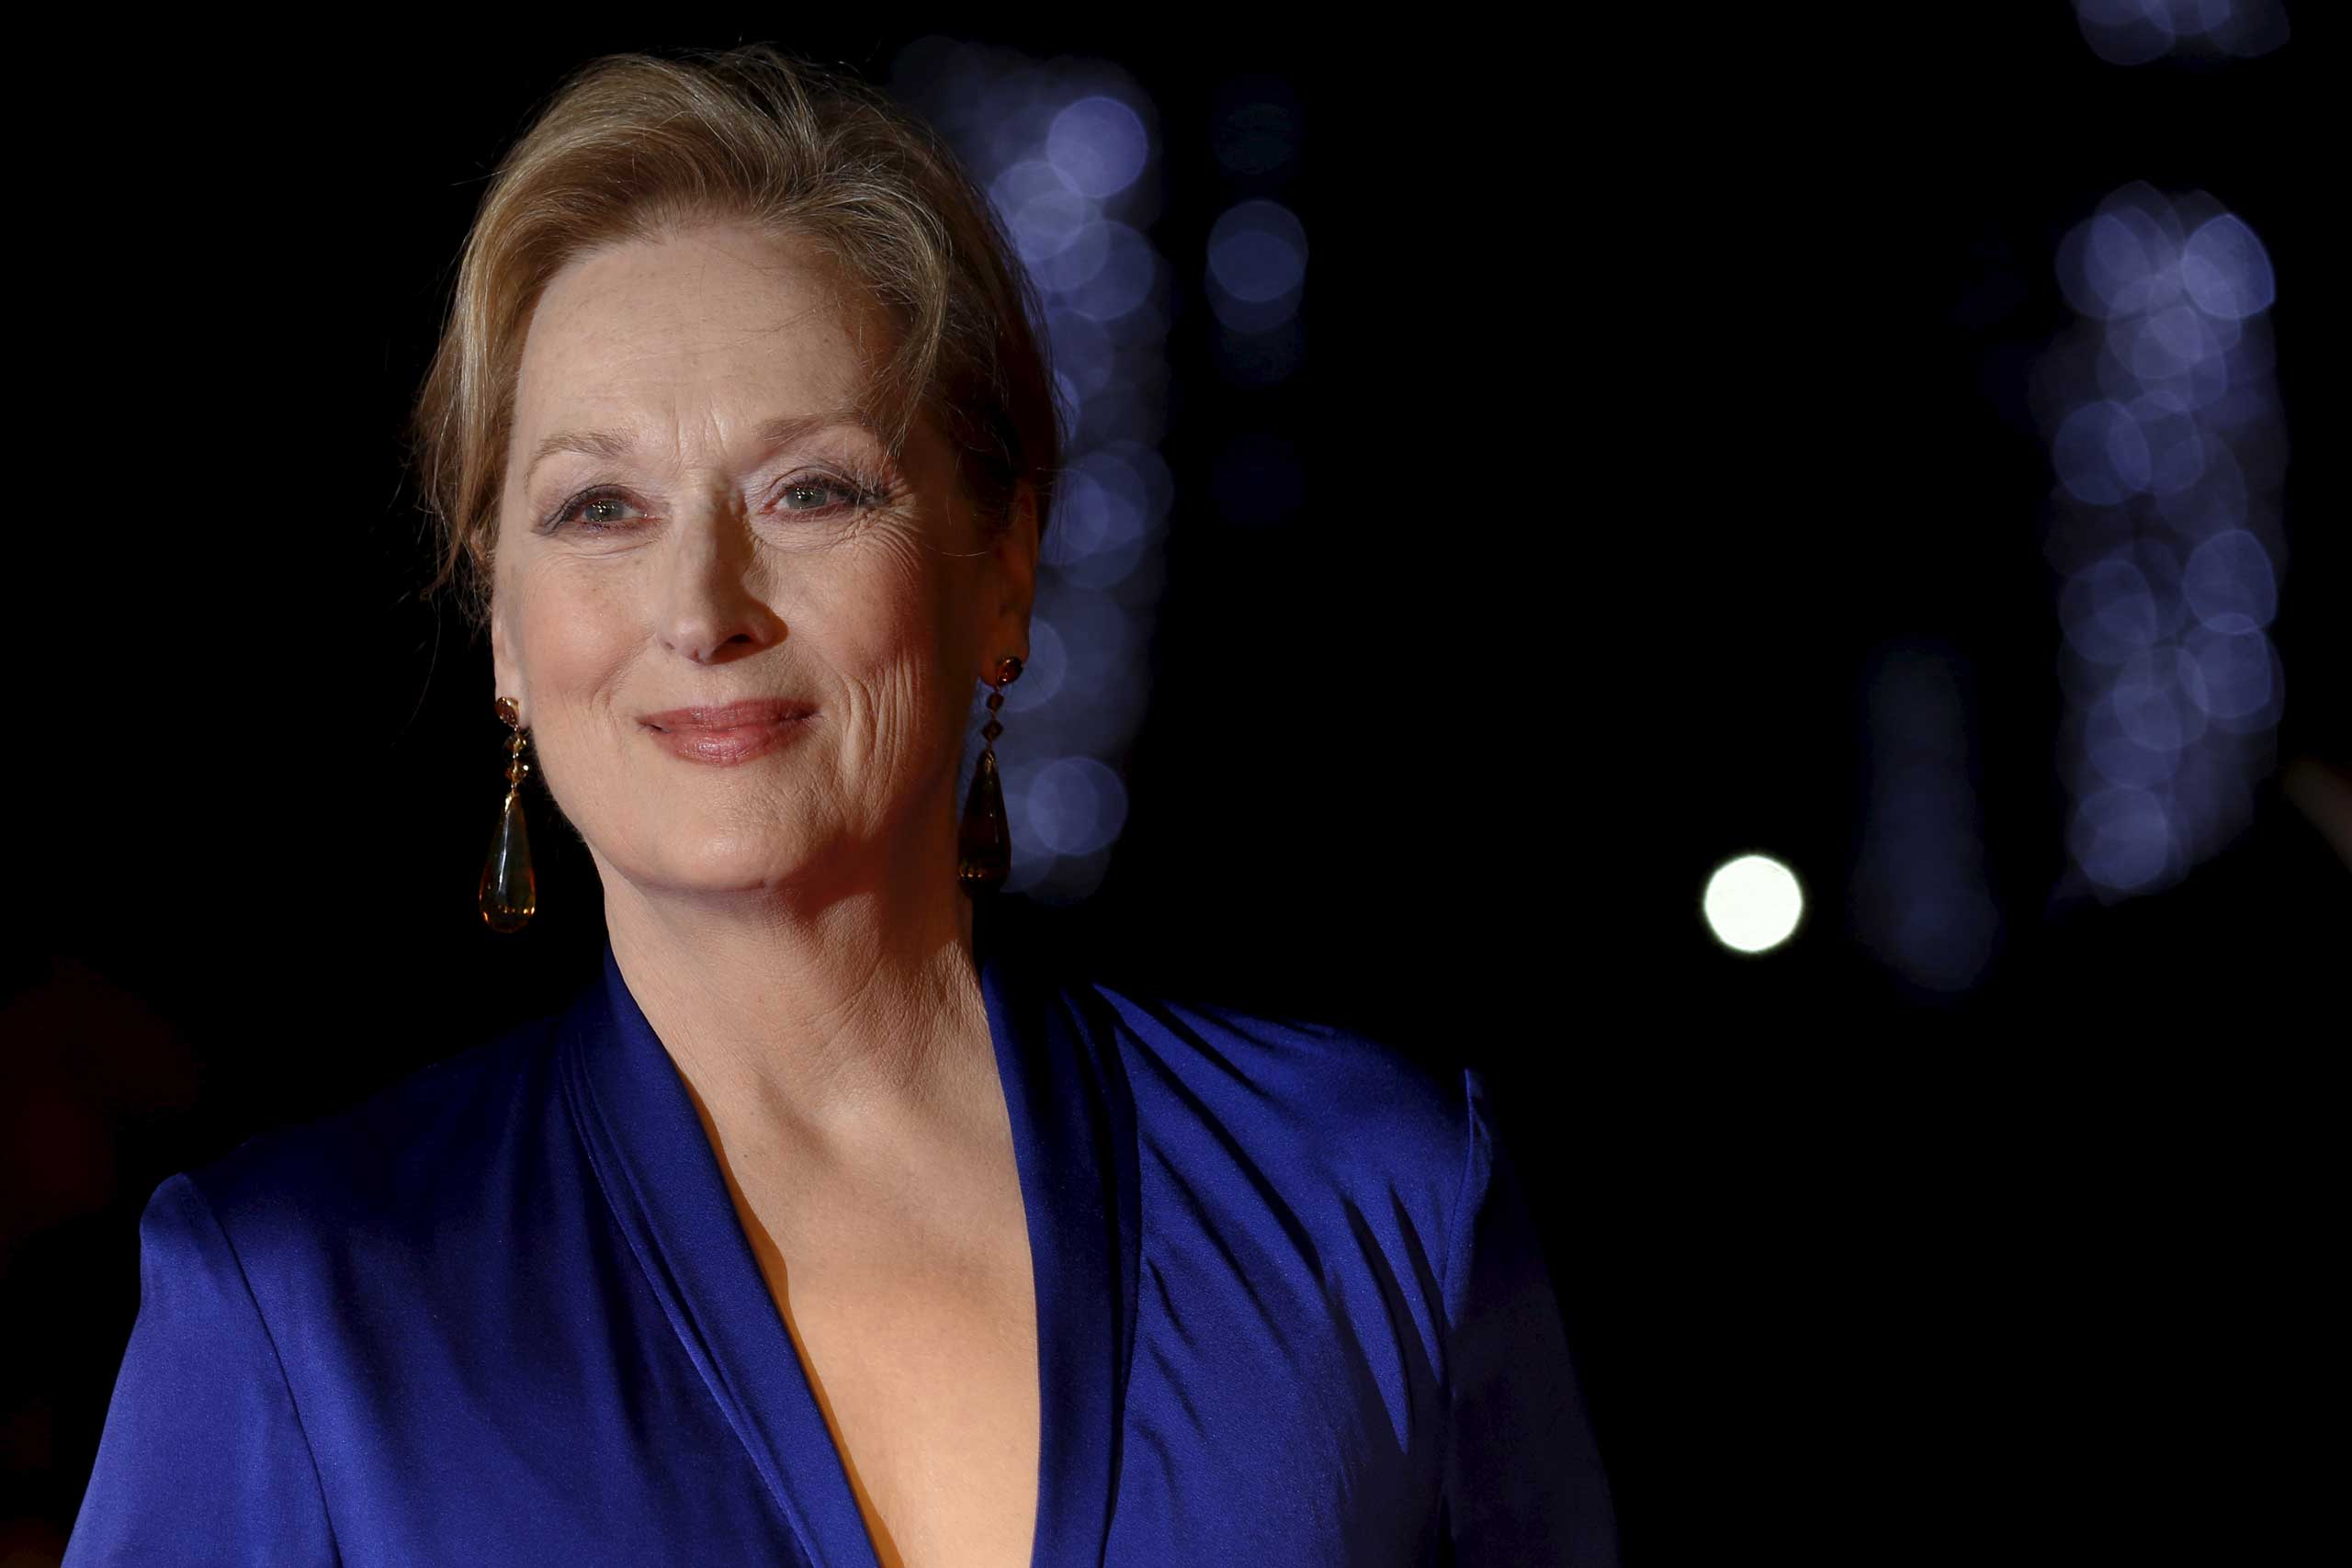 Actress Meryl Streep arrives for the Gala screening of the film  Suffragette  for the opening night of the British Film Institute (BFI) Film Festival at Leicester Square in London Oct. 7, 2015.